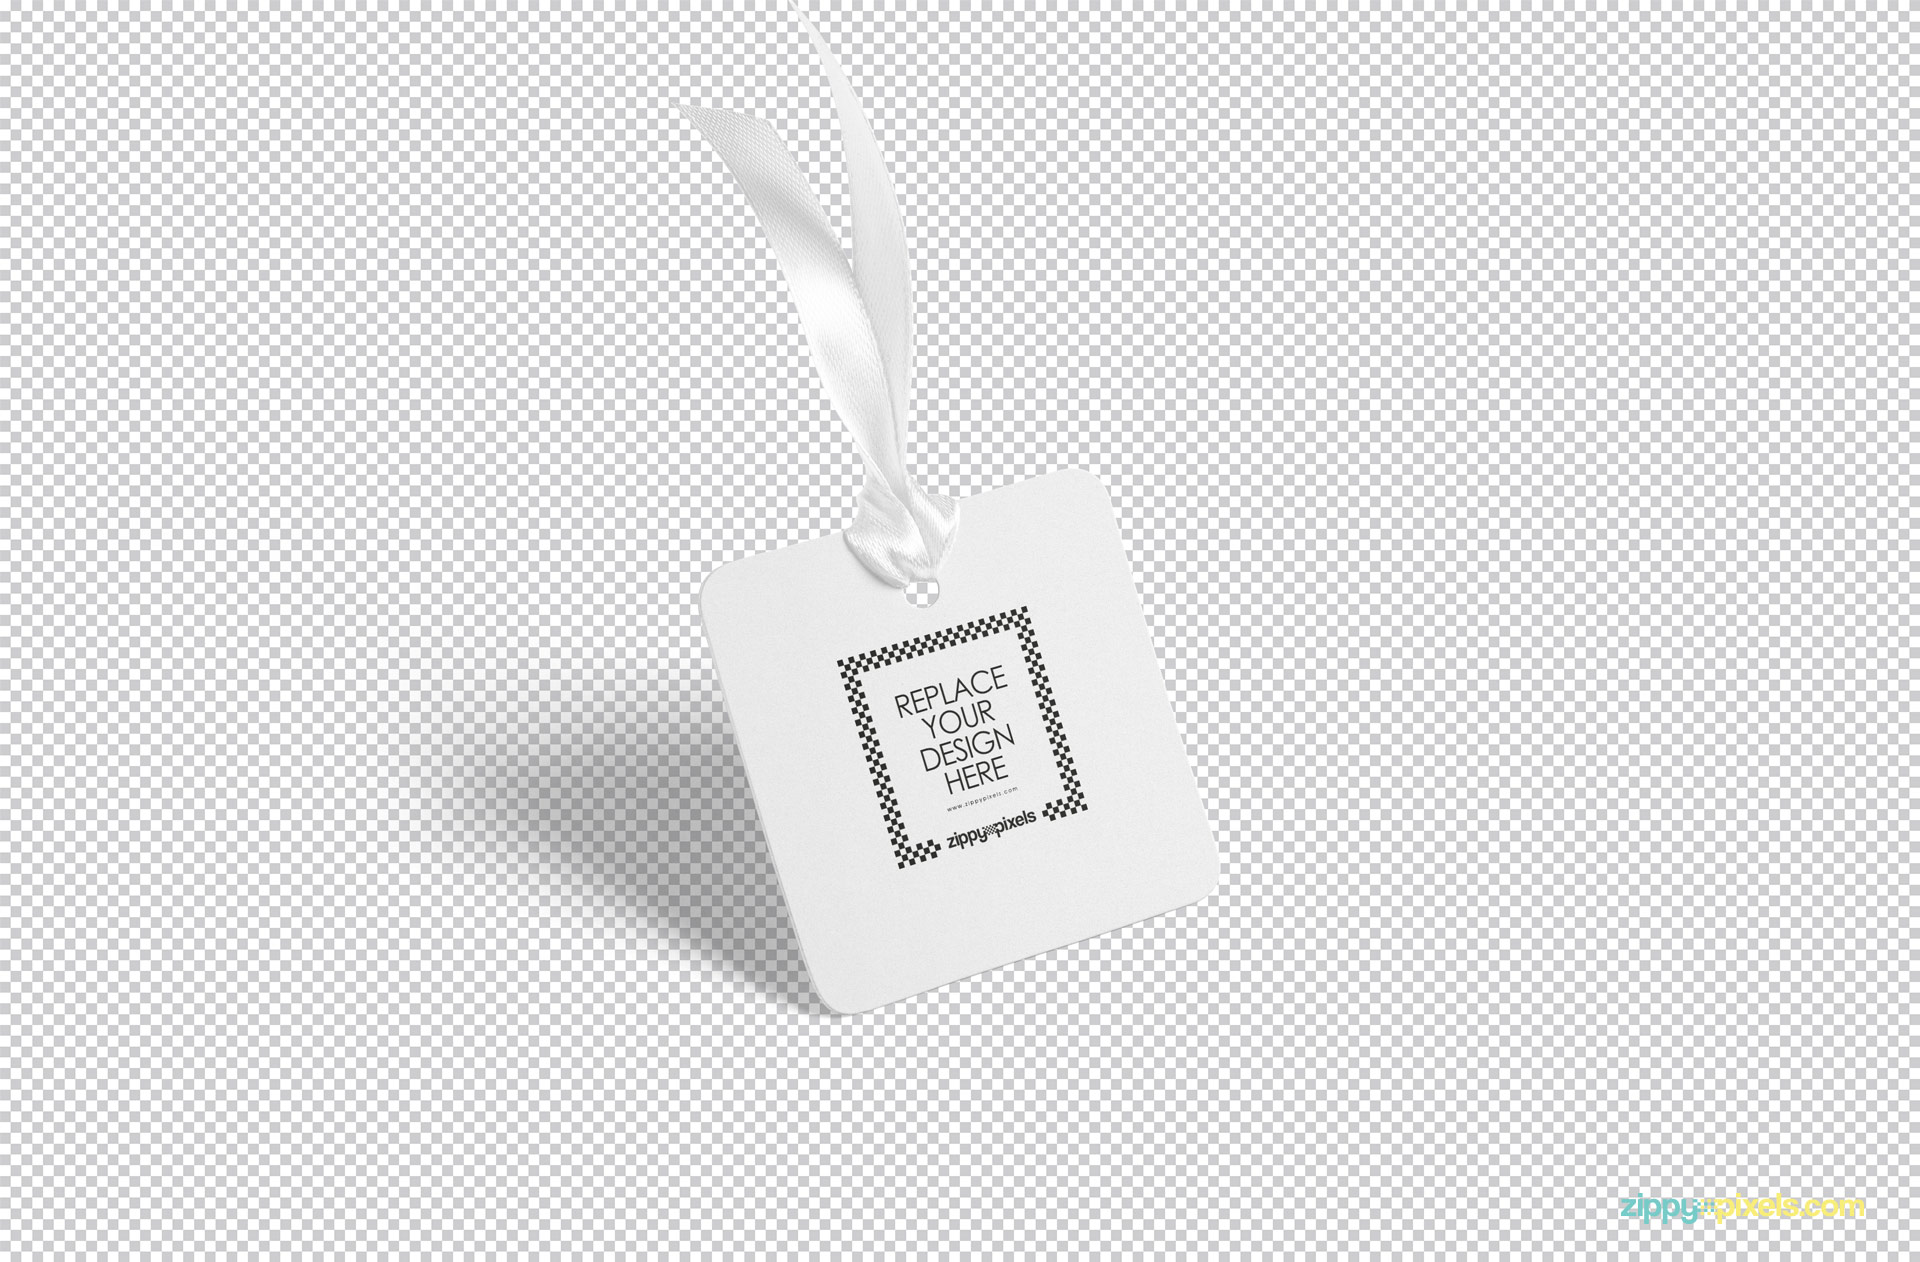 Use Photoshop to replace the design of this free tag mockup.